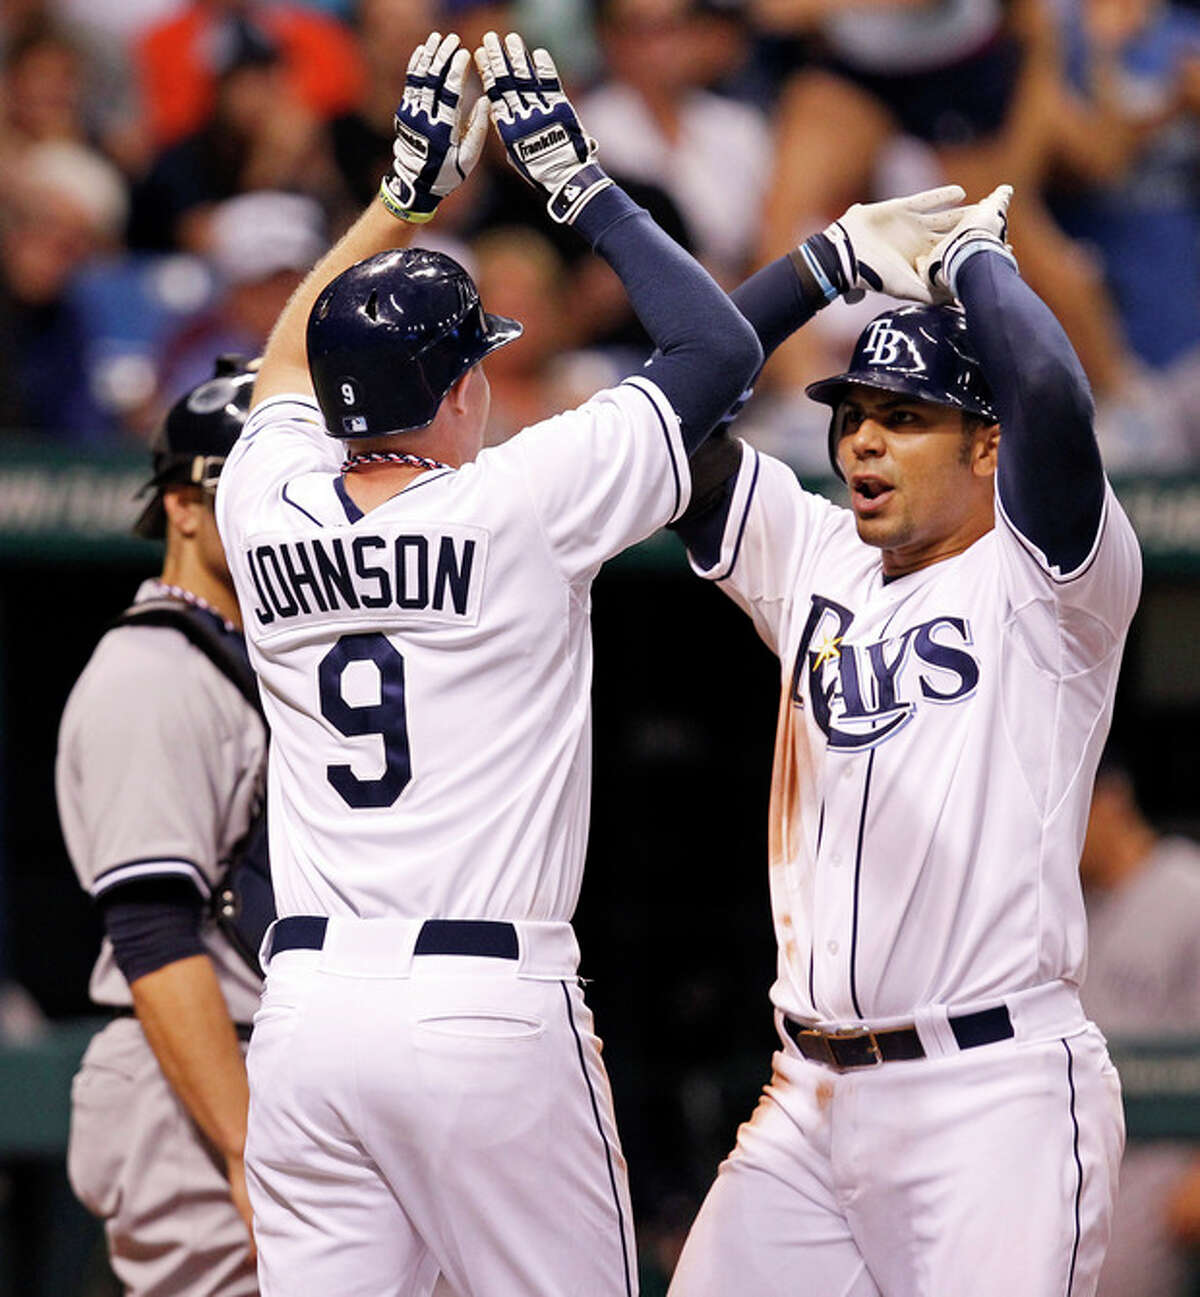 Tampa Bay Rays' Carlos Pena, right, is congratulated by Elliot Johnson after his two-run home run scored both during the seventh inning of a baseball game against the New York Yankees, Wednesday, July 4, 2012, in St. Petersburg, Fla. (AP Photo/Mike Carlson)